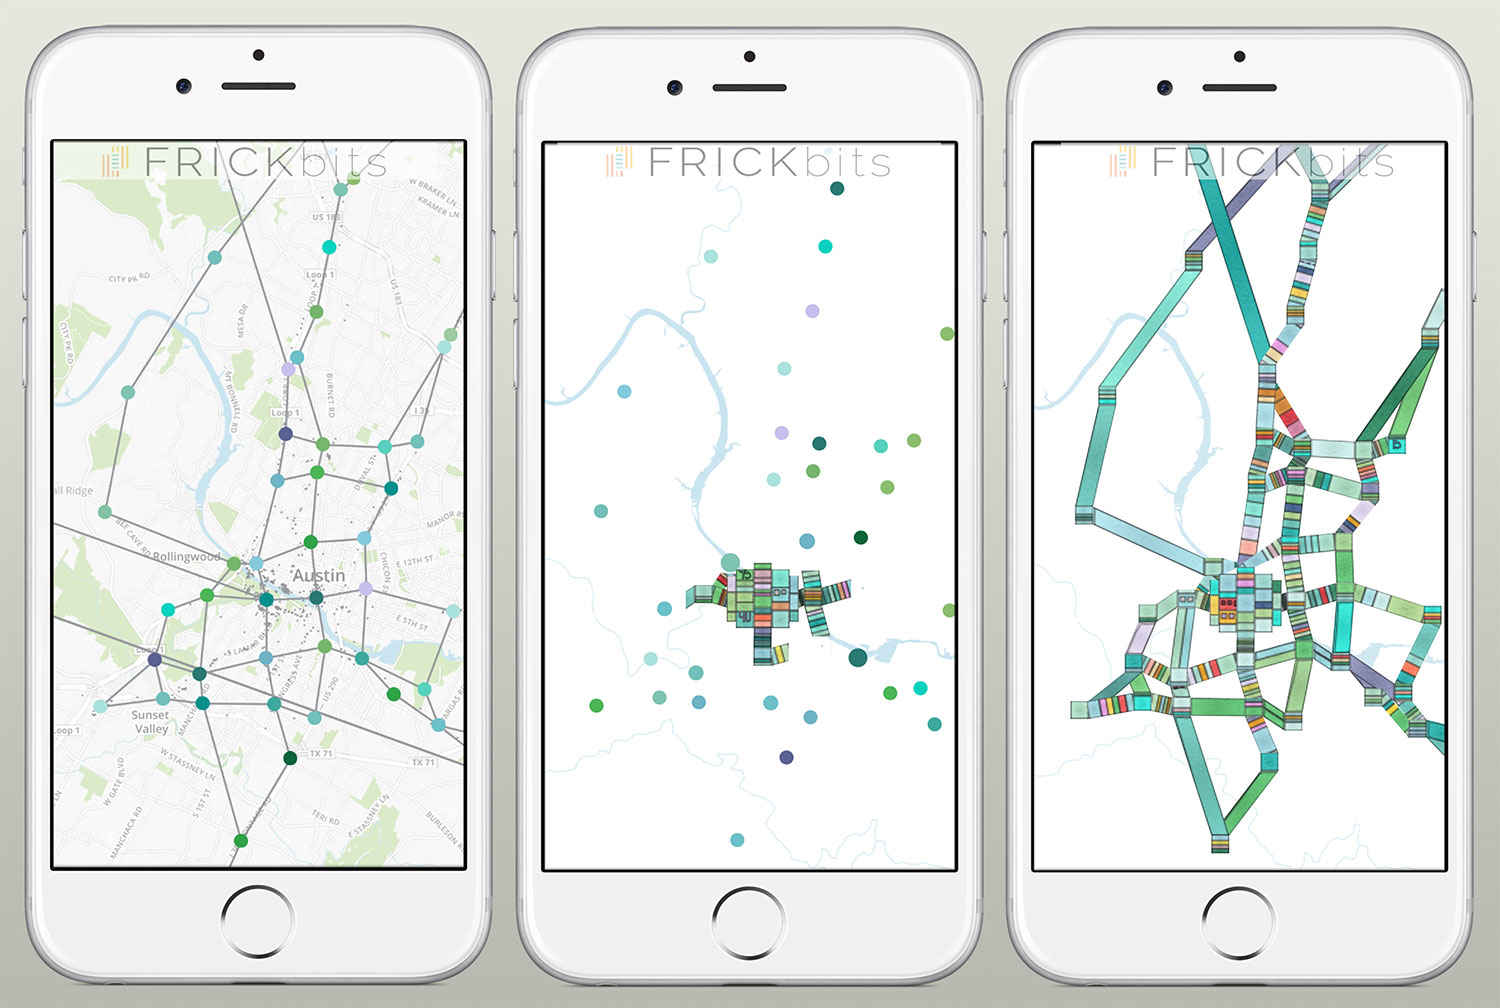 FRICKbits, your location builds art. It's your life, it's your data, why not turn it into art?